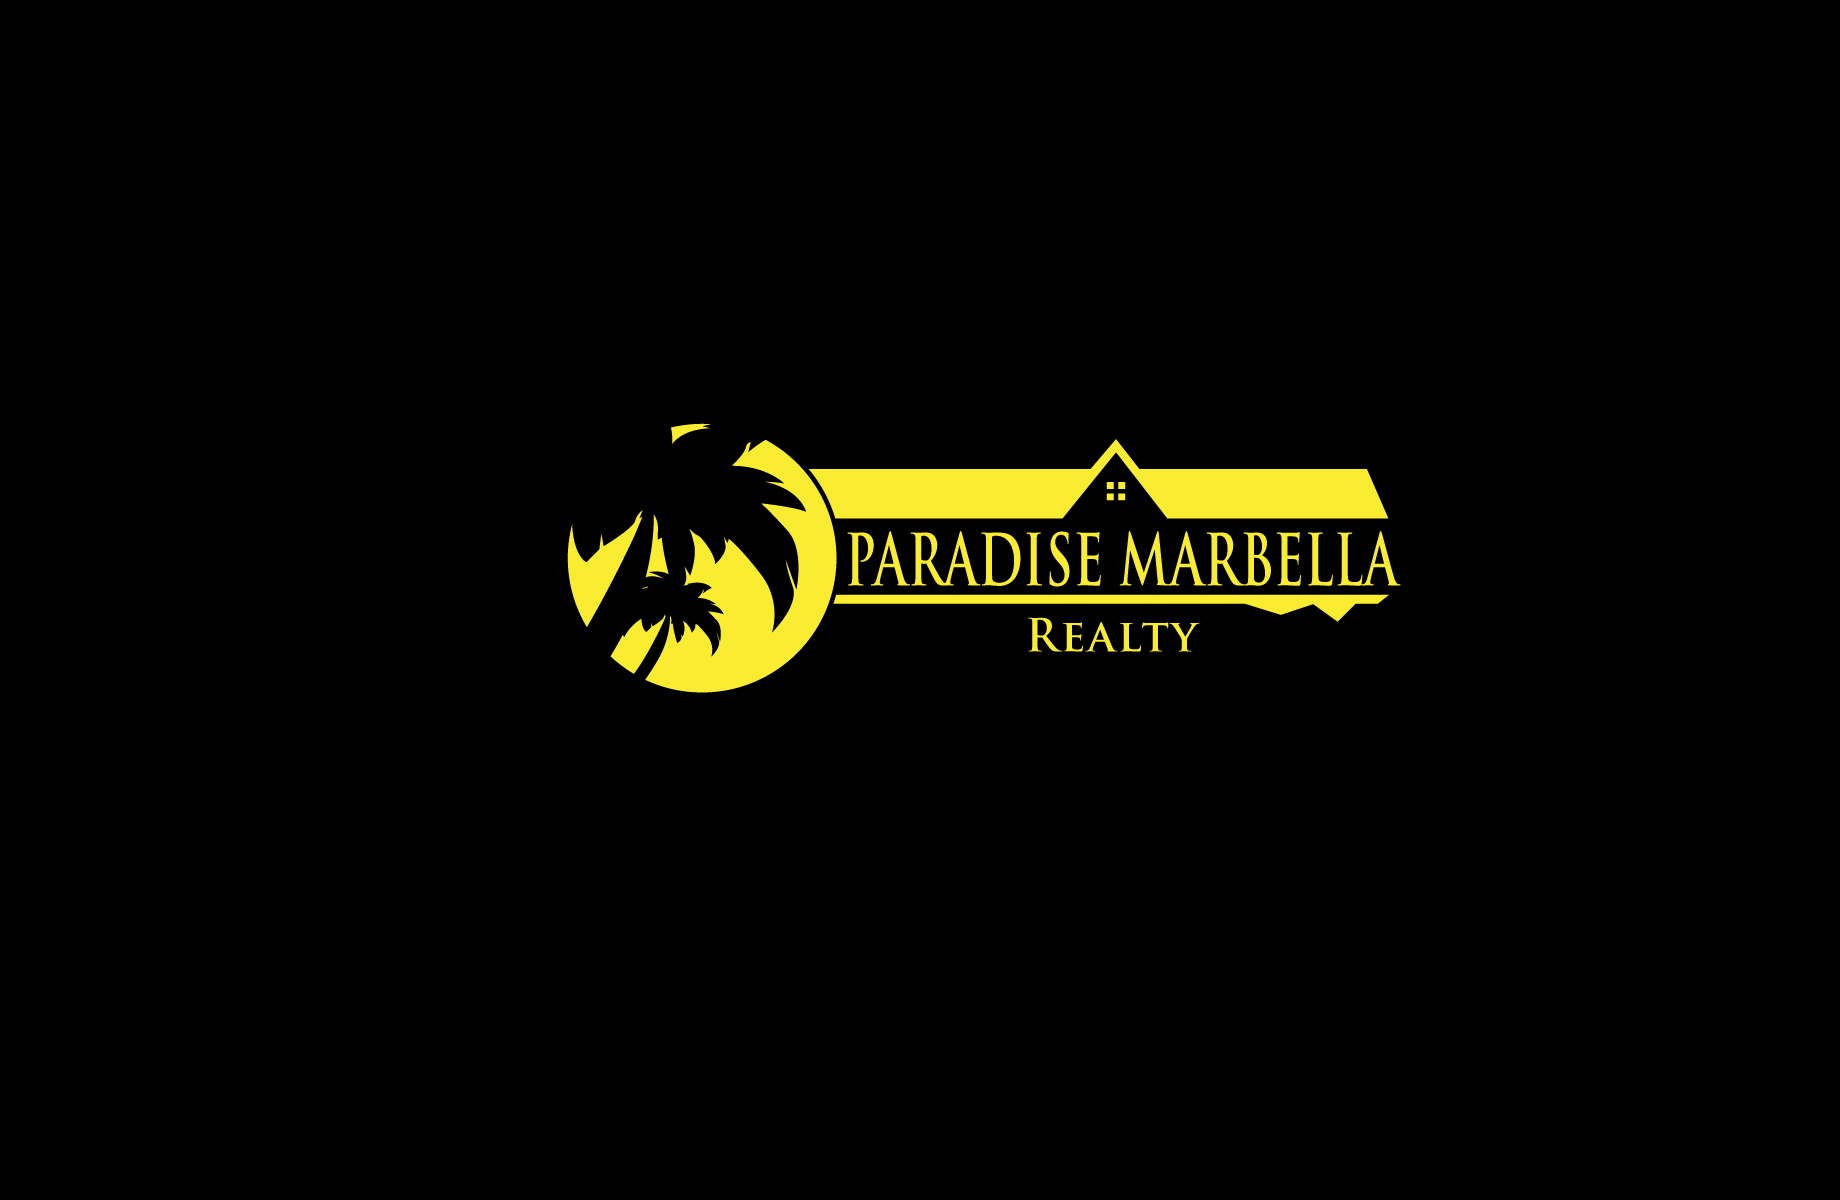 Logo Design by Jan Chua - Entry No. 50 in the Logo Design Contest Captivating Logo Design for Paradise Marbella Realty.